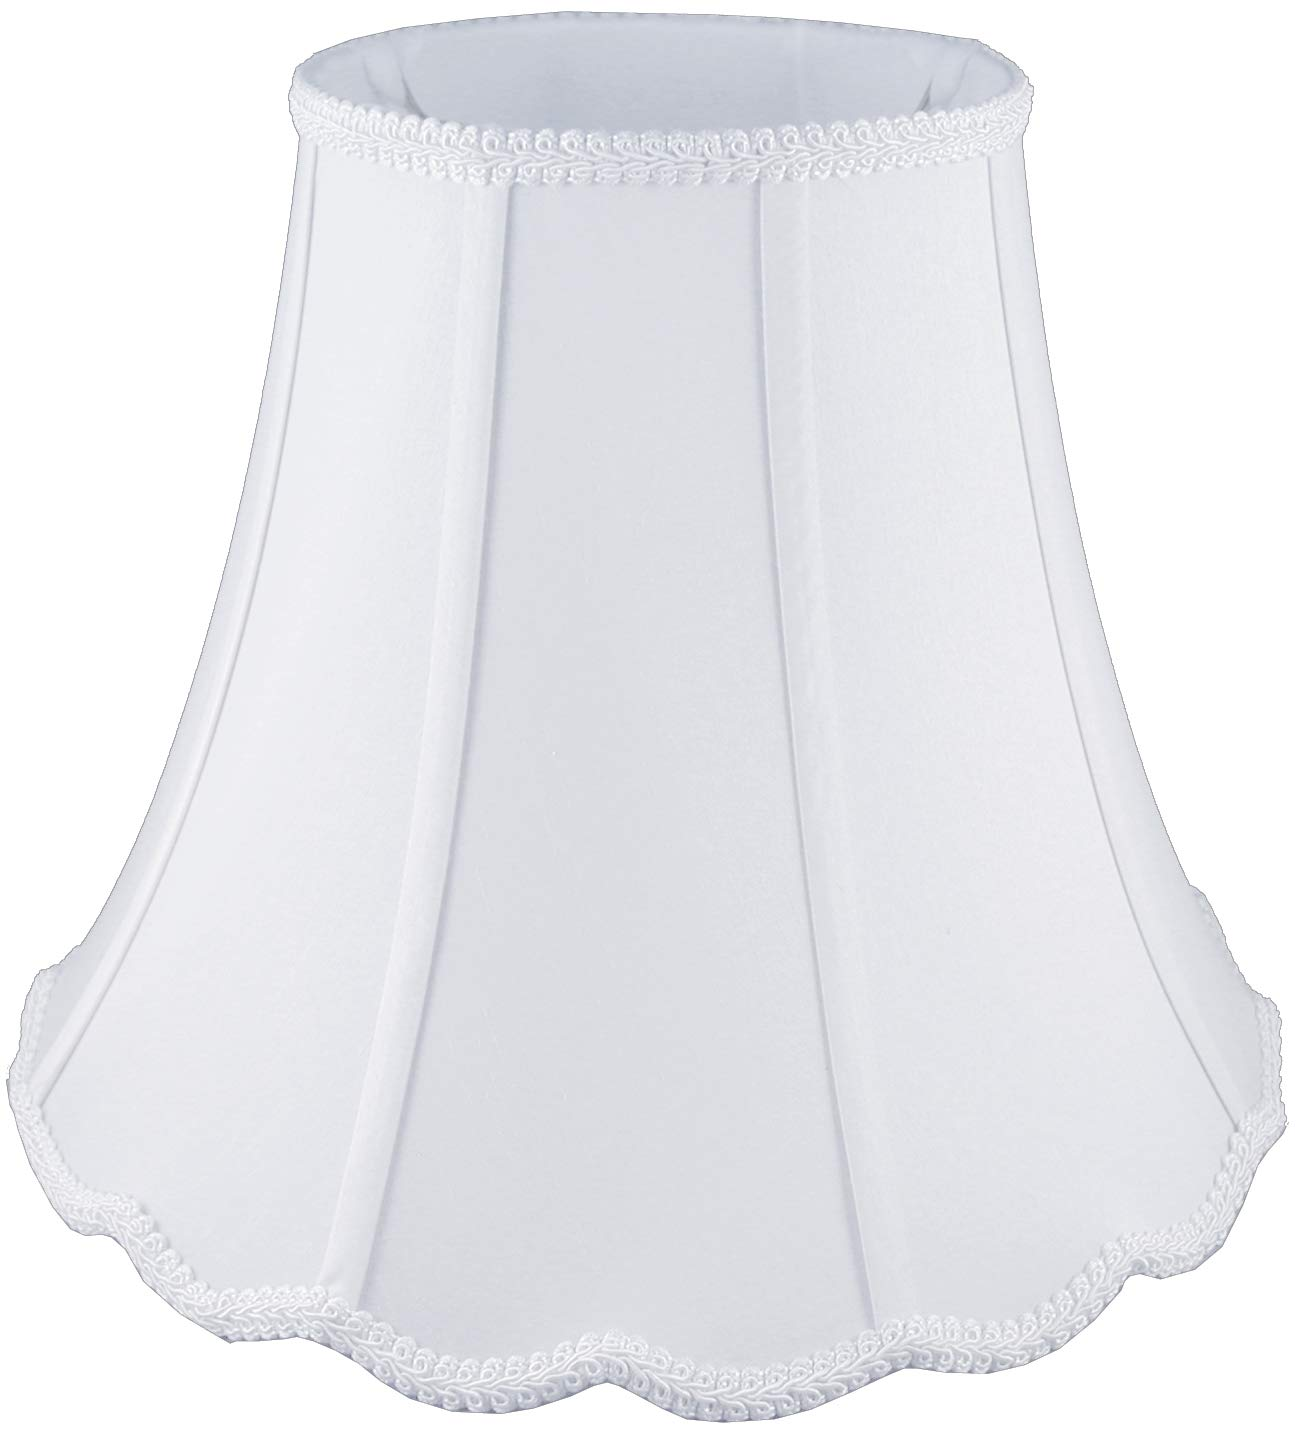 American Pride 10''x 20''x 15'' Scallop Soft Shantung Tailored Lampshade, White